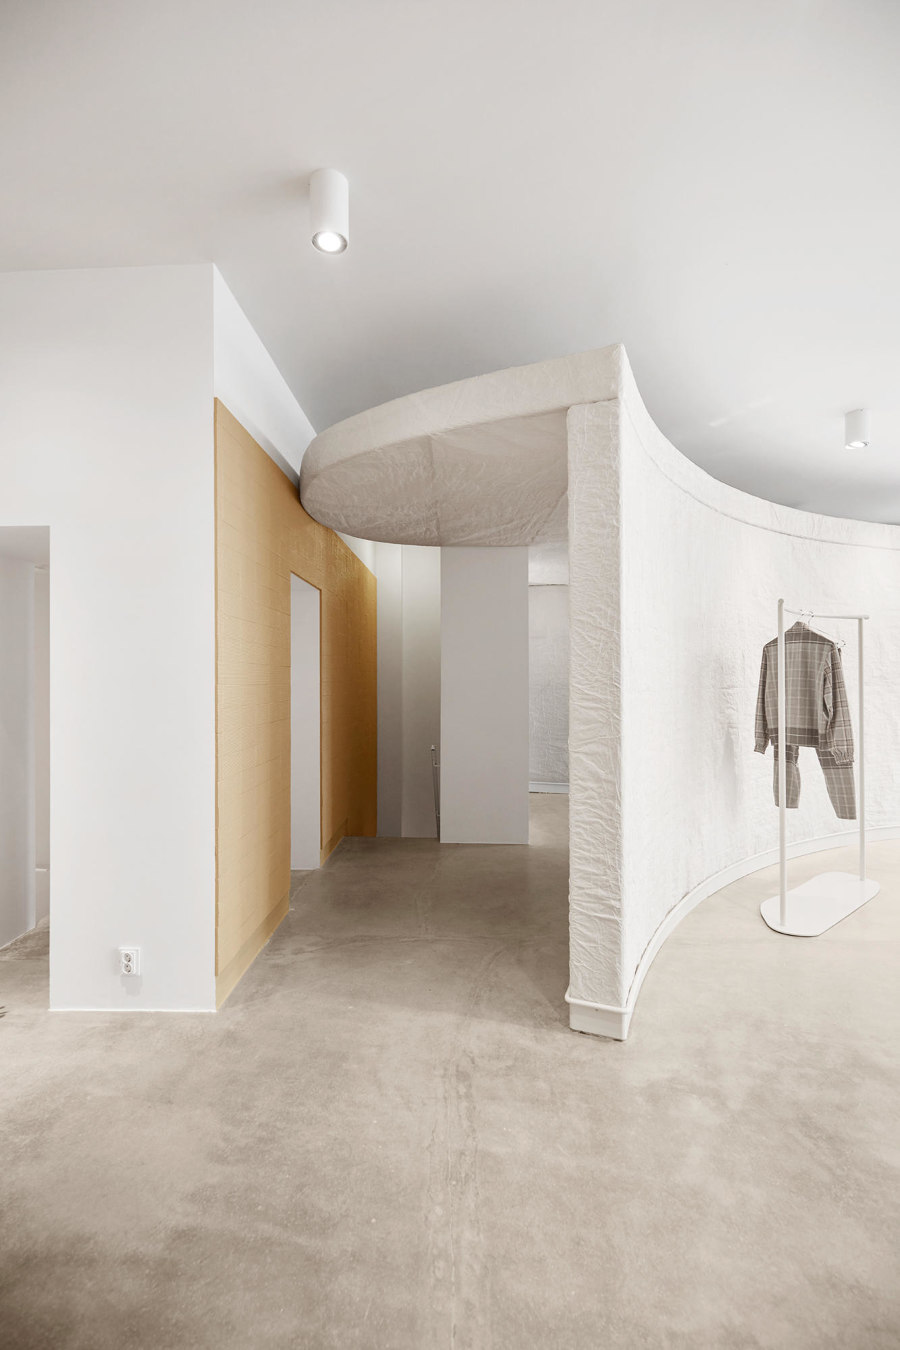 Pure fabrication: textiles in architecture | News